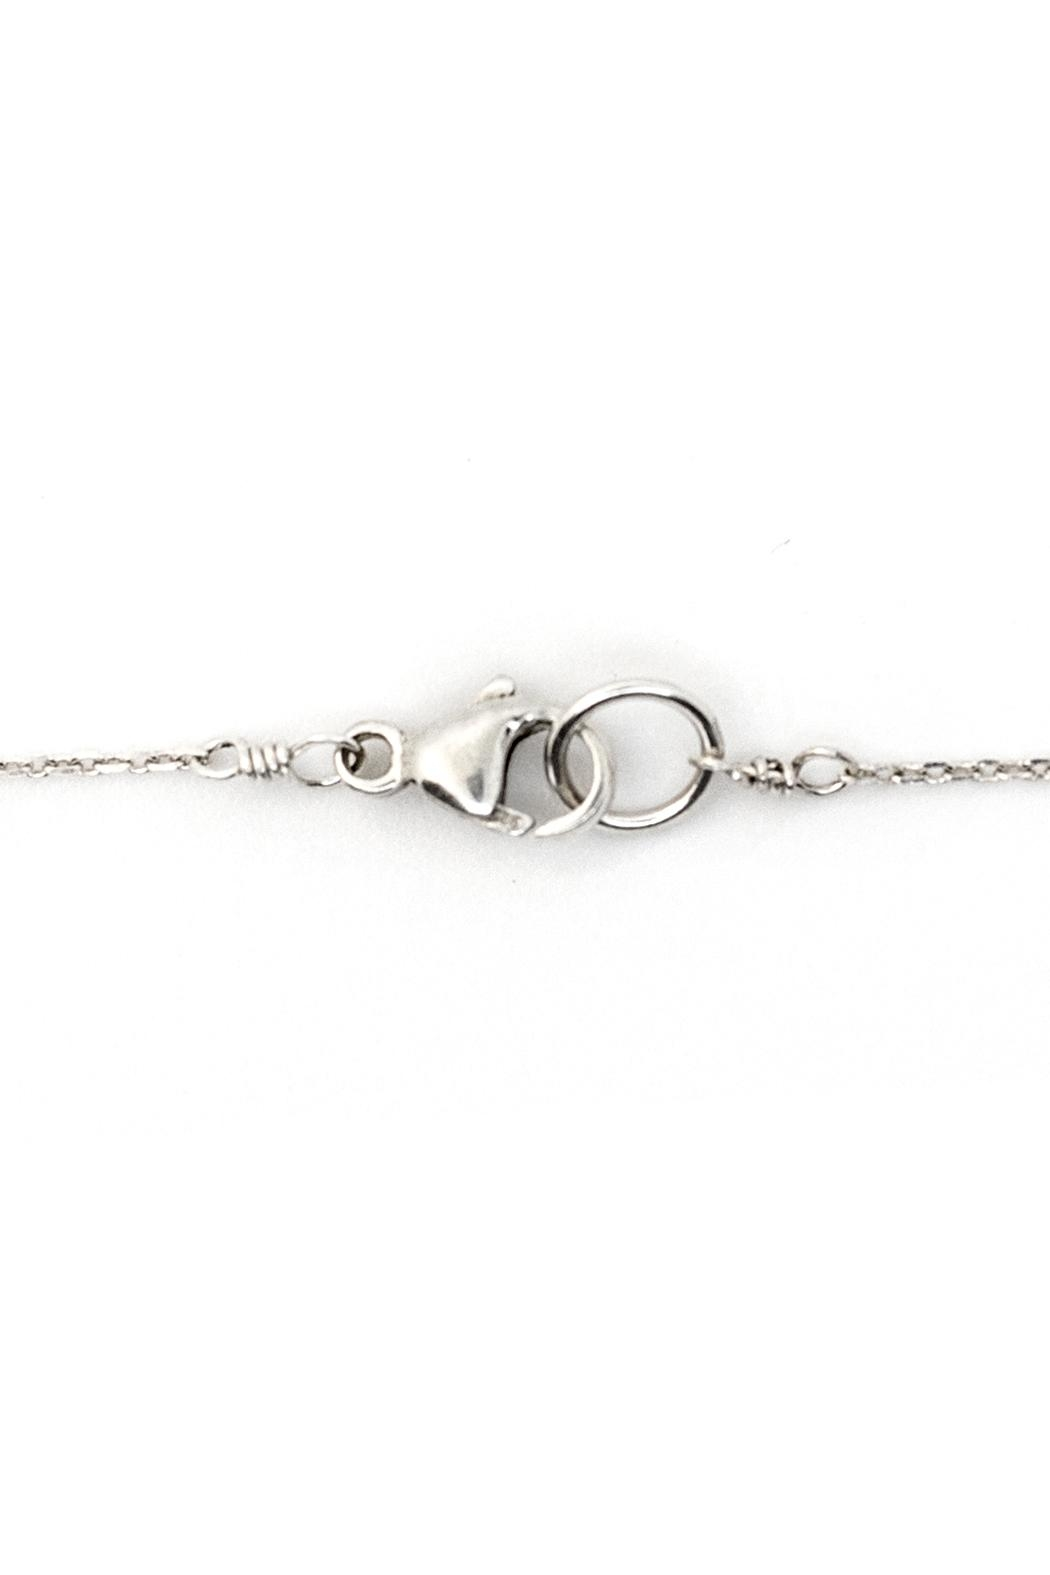 Kate Sydney Jewelry Silver Filigree Necklace - Back Cropped Image